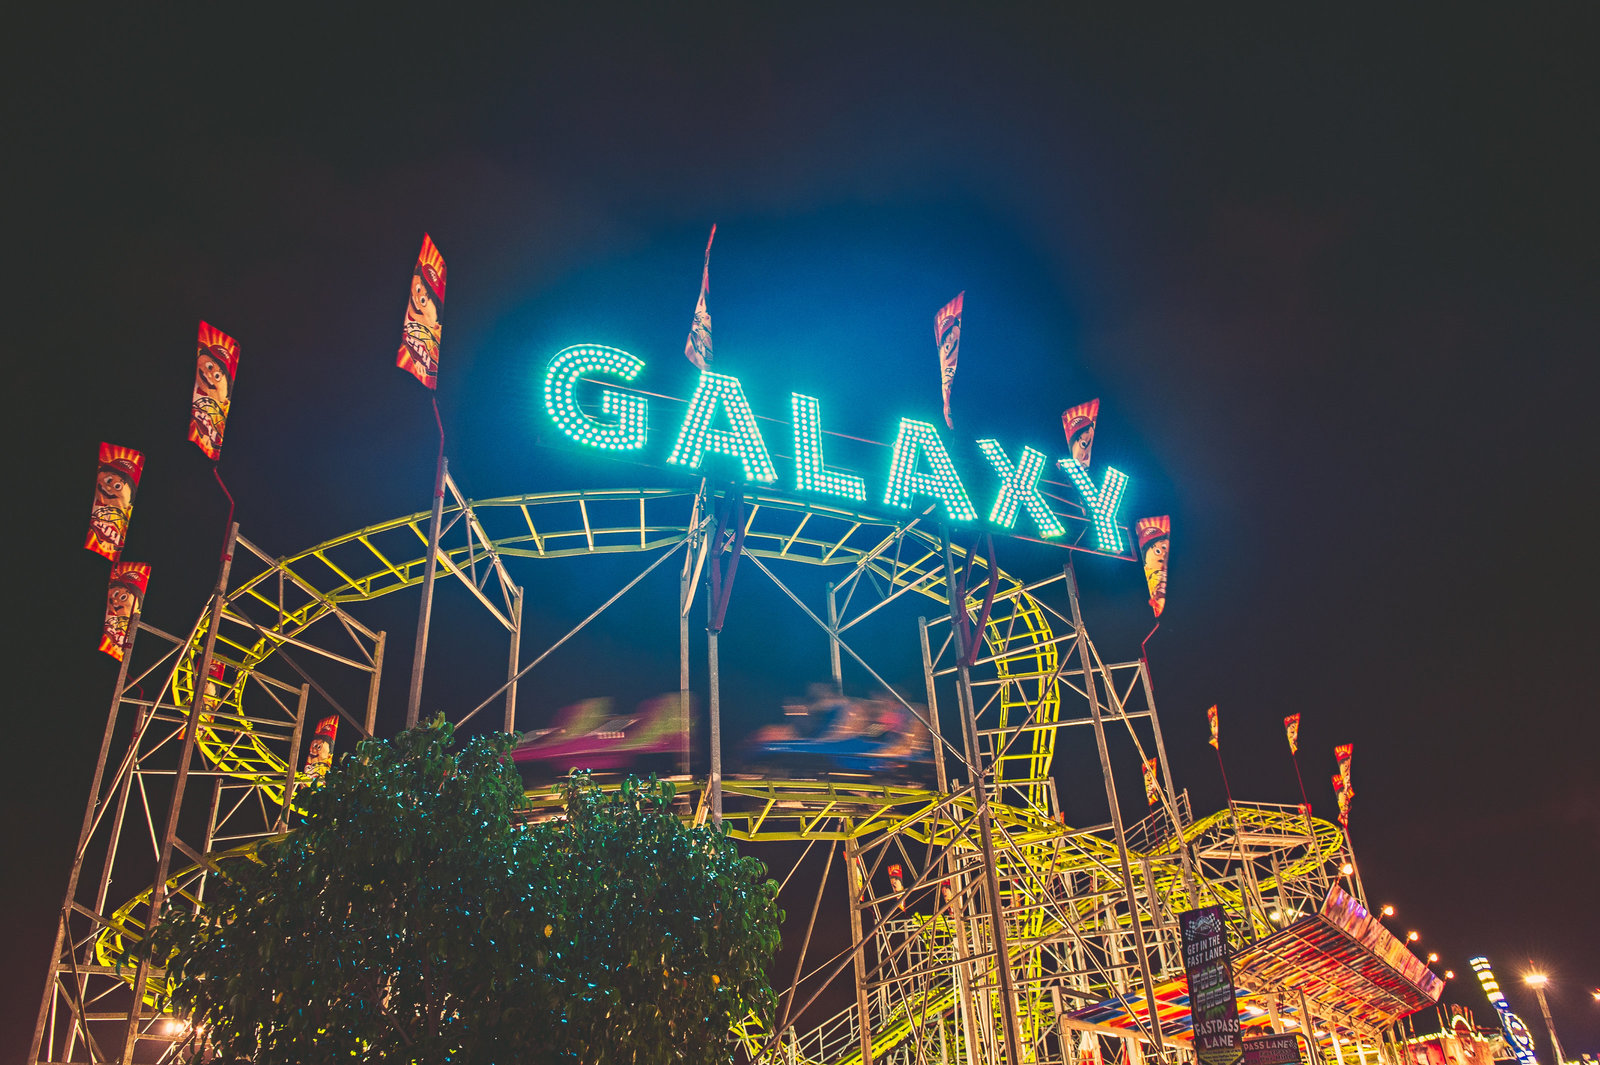 Galaxy roller coaster at Orange County Fair